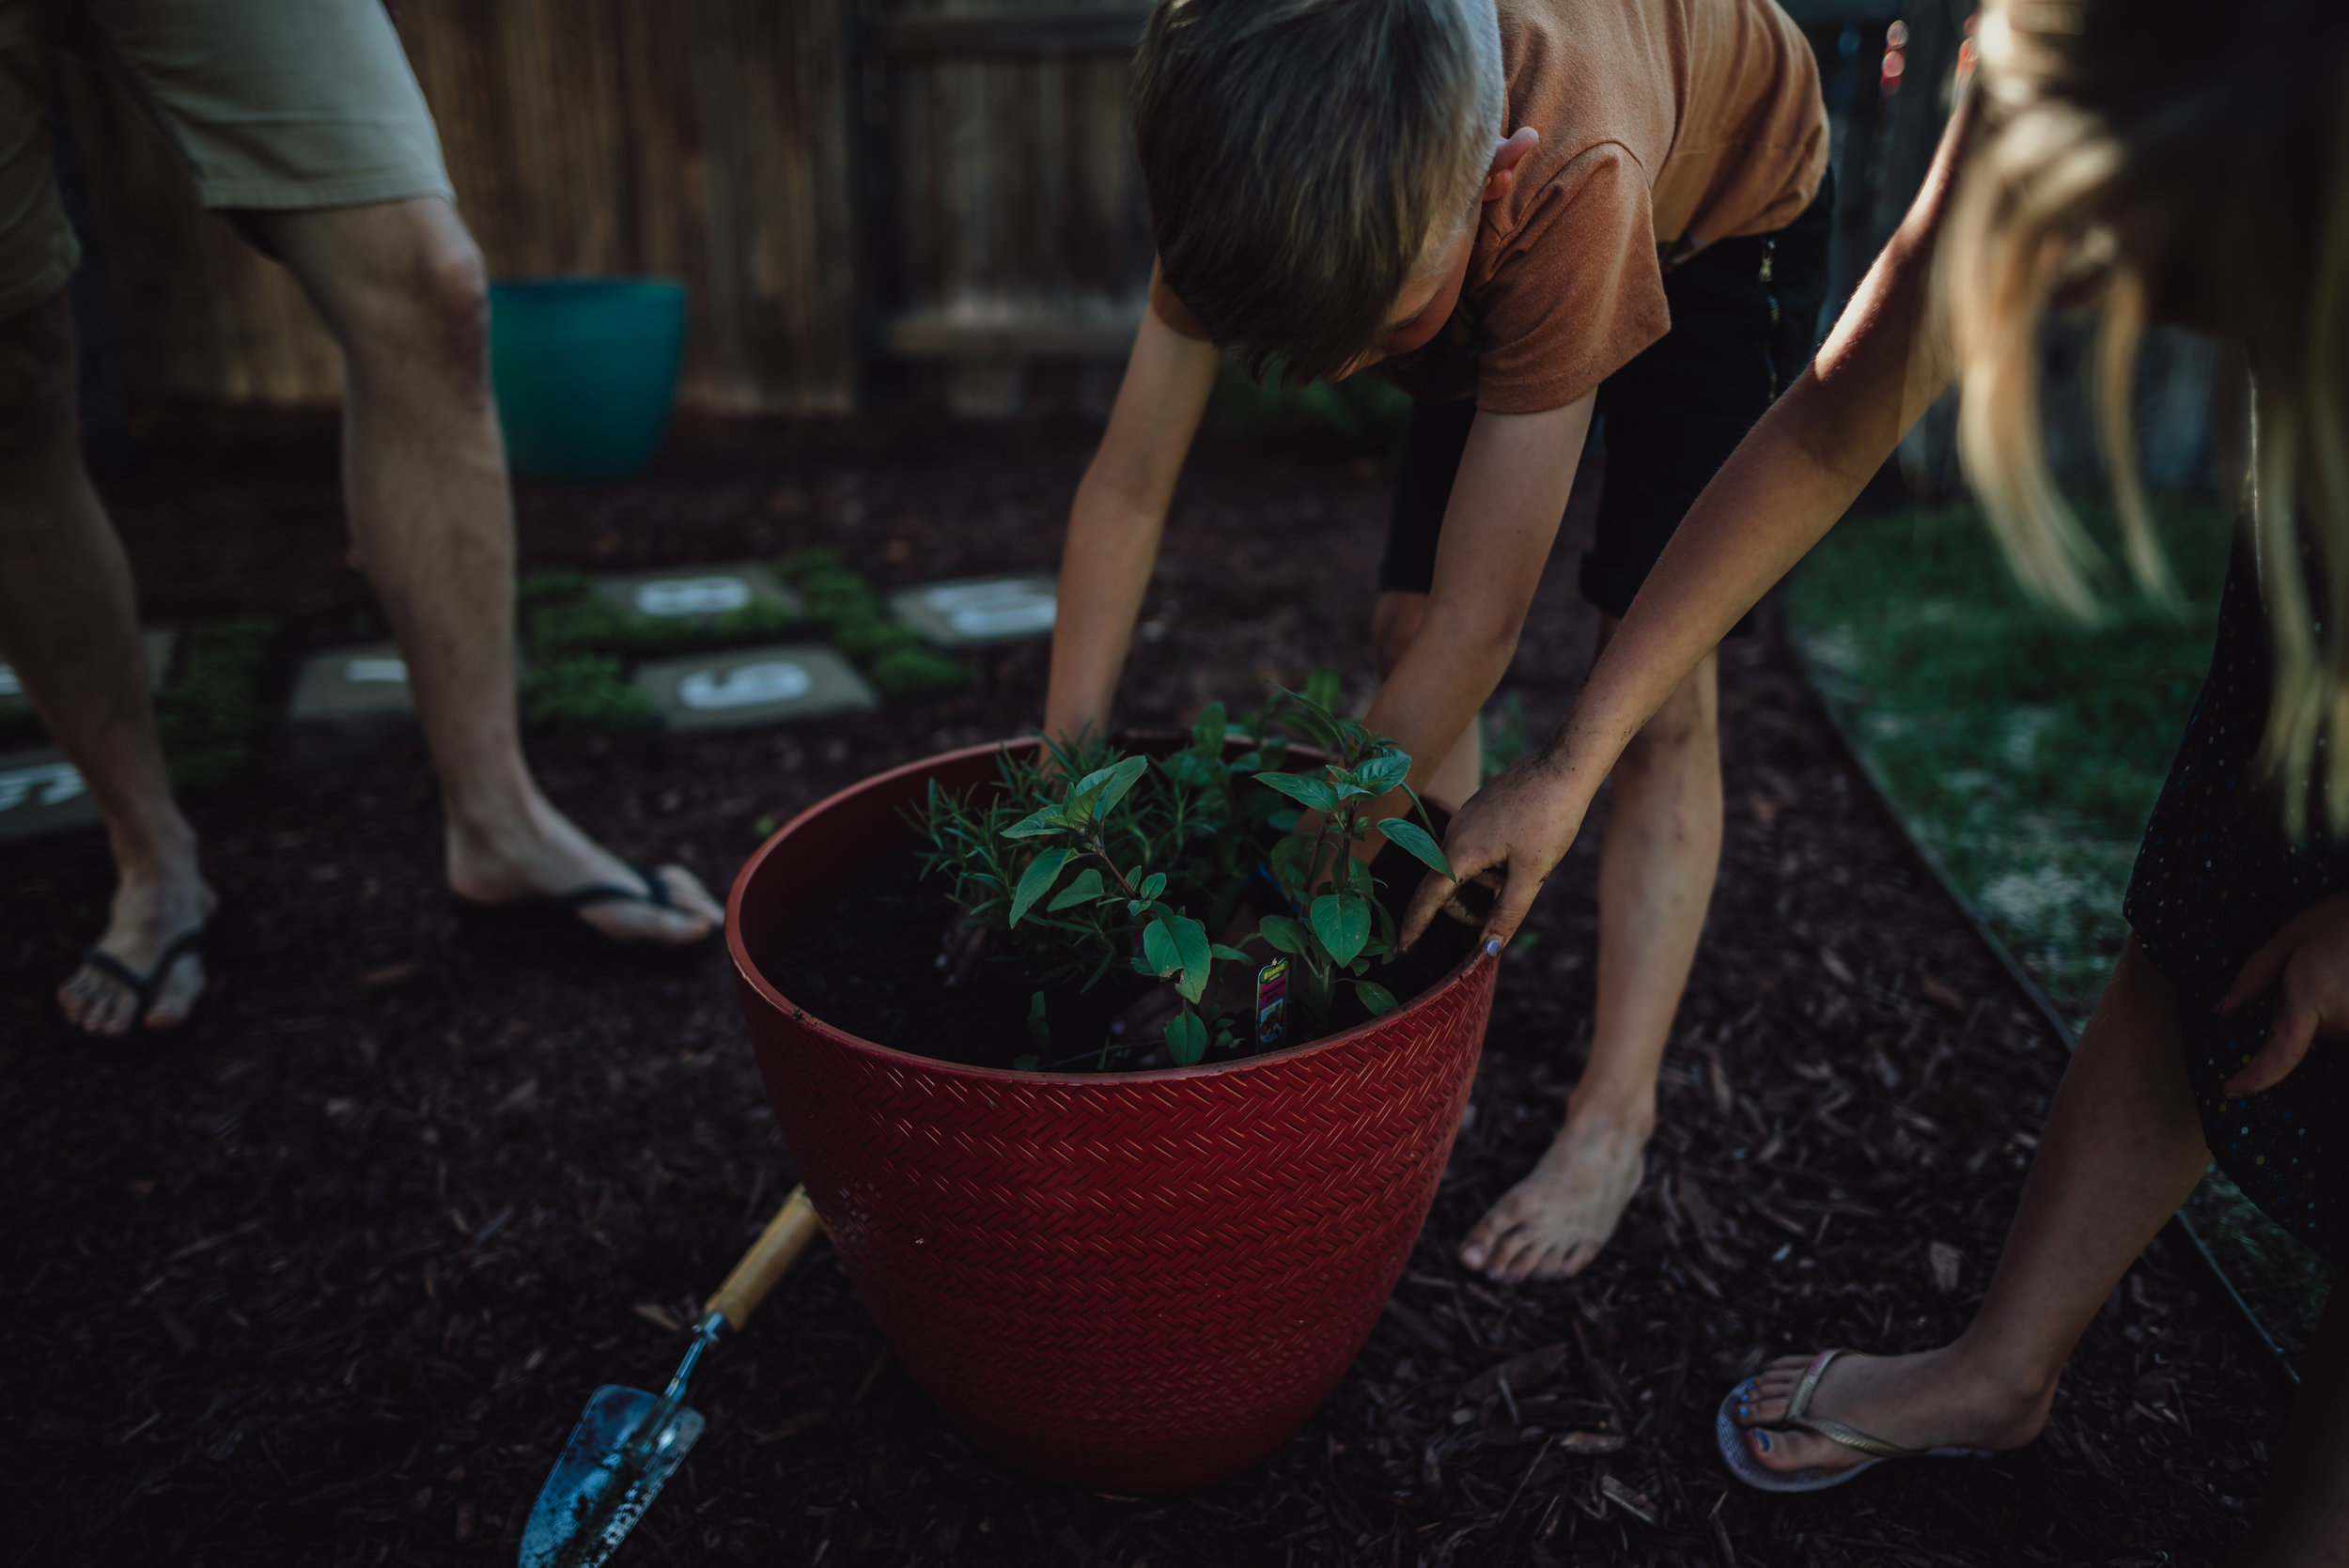 colorado springs family lifestyle gardening photography-68.jpg